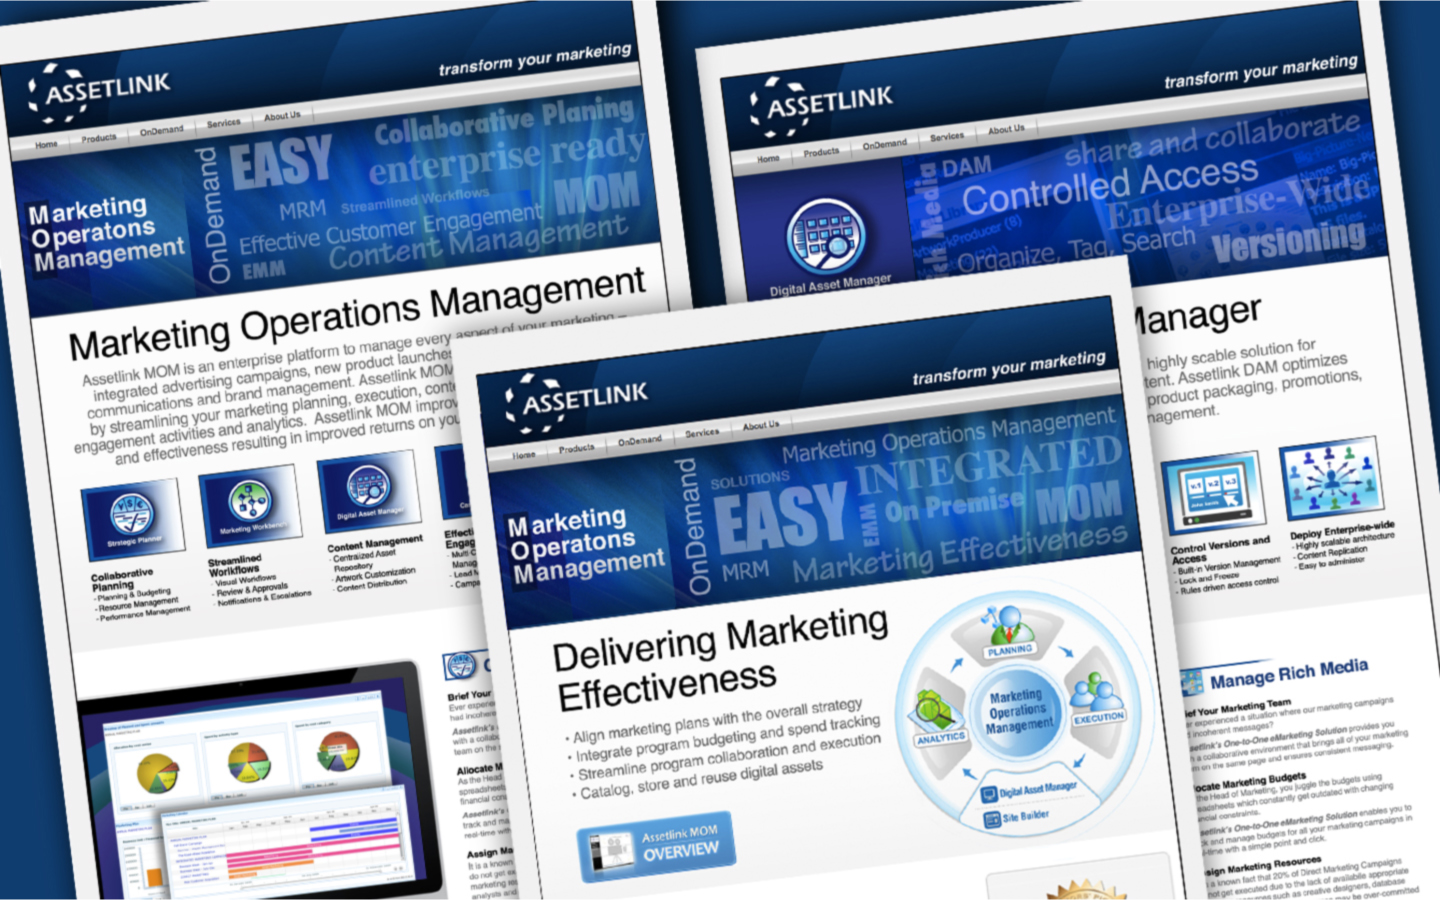 <p>Website content and design transition plan was developed.</p>